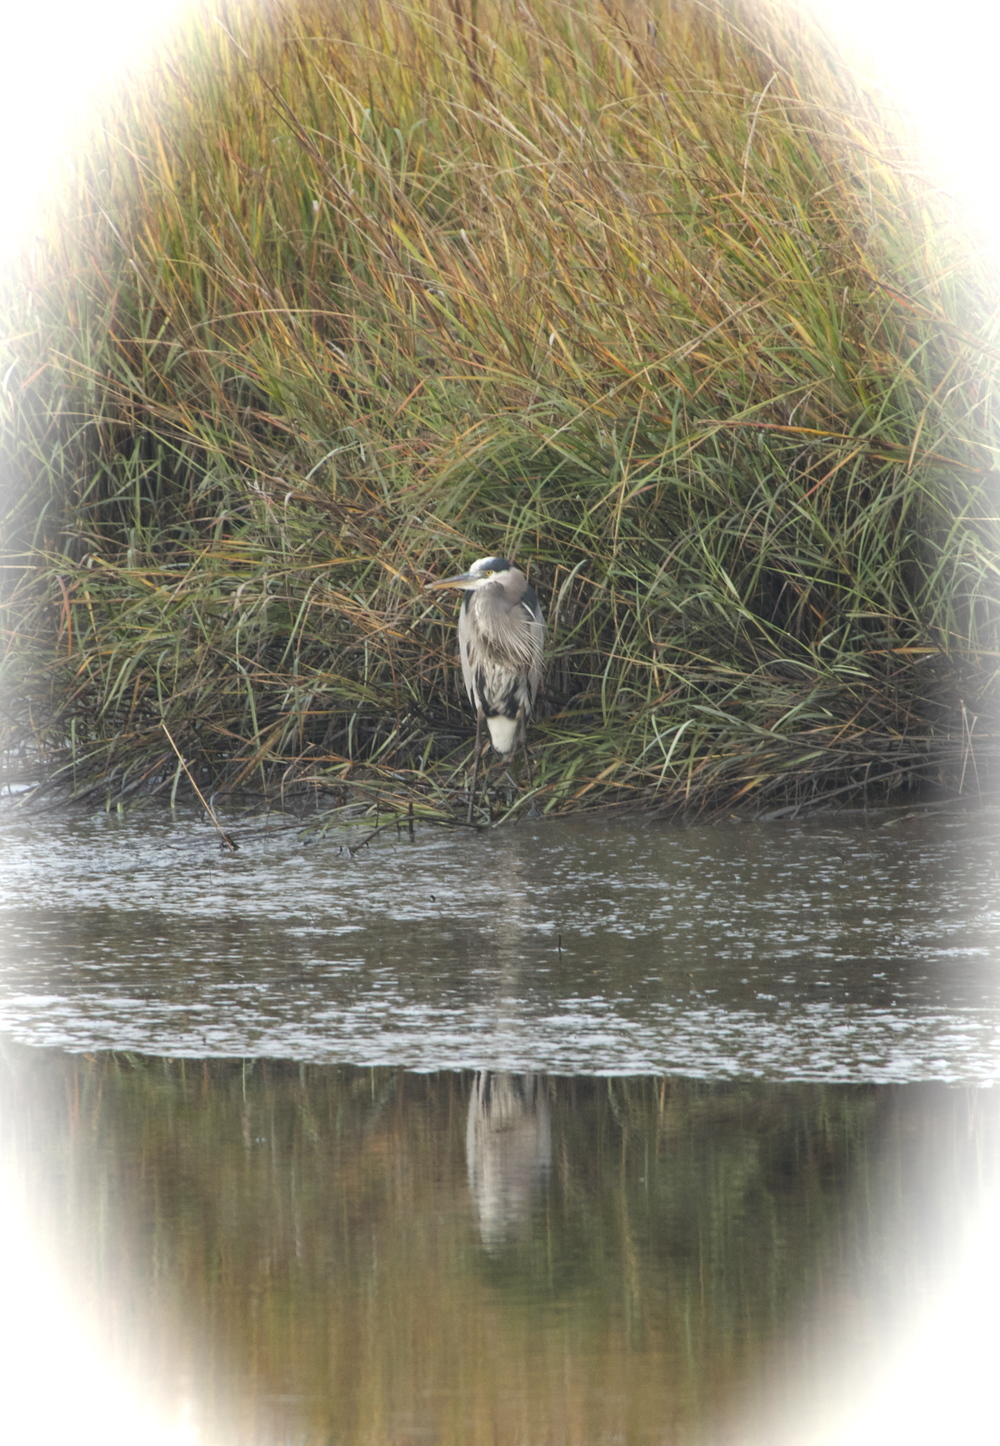 Old Man River the venerable Great Blue Heron